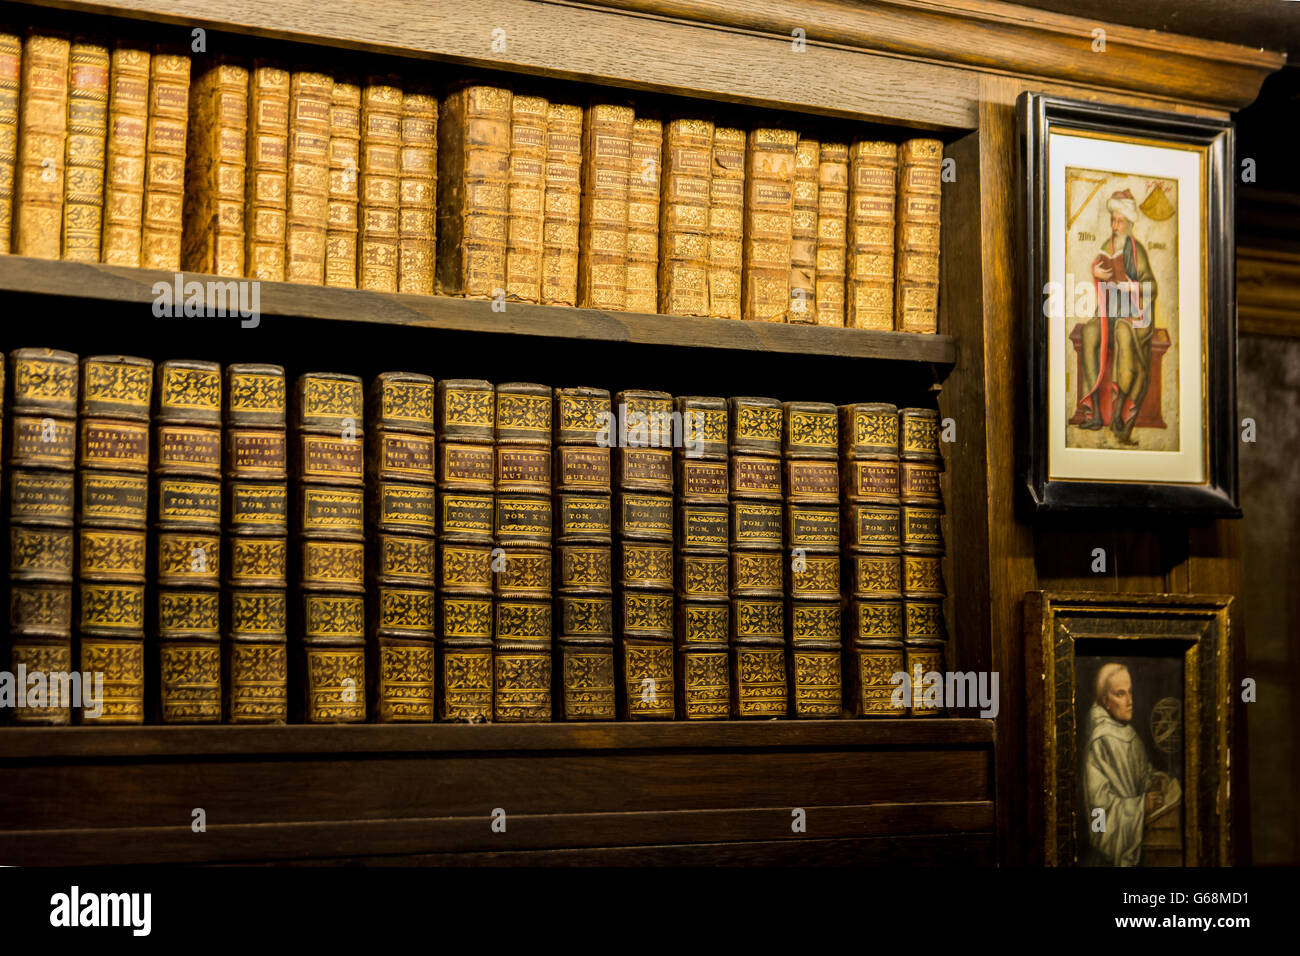 Old Books in a Wooden Bookshelf beside Old Portraits - Stock Image